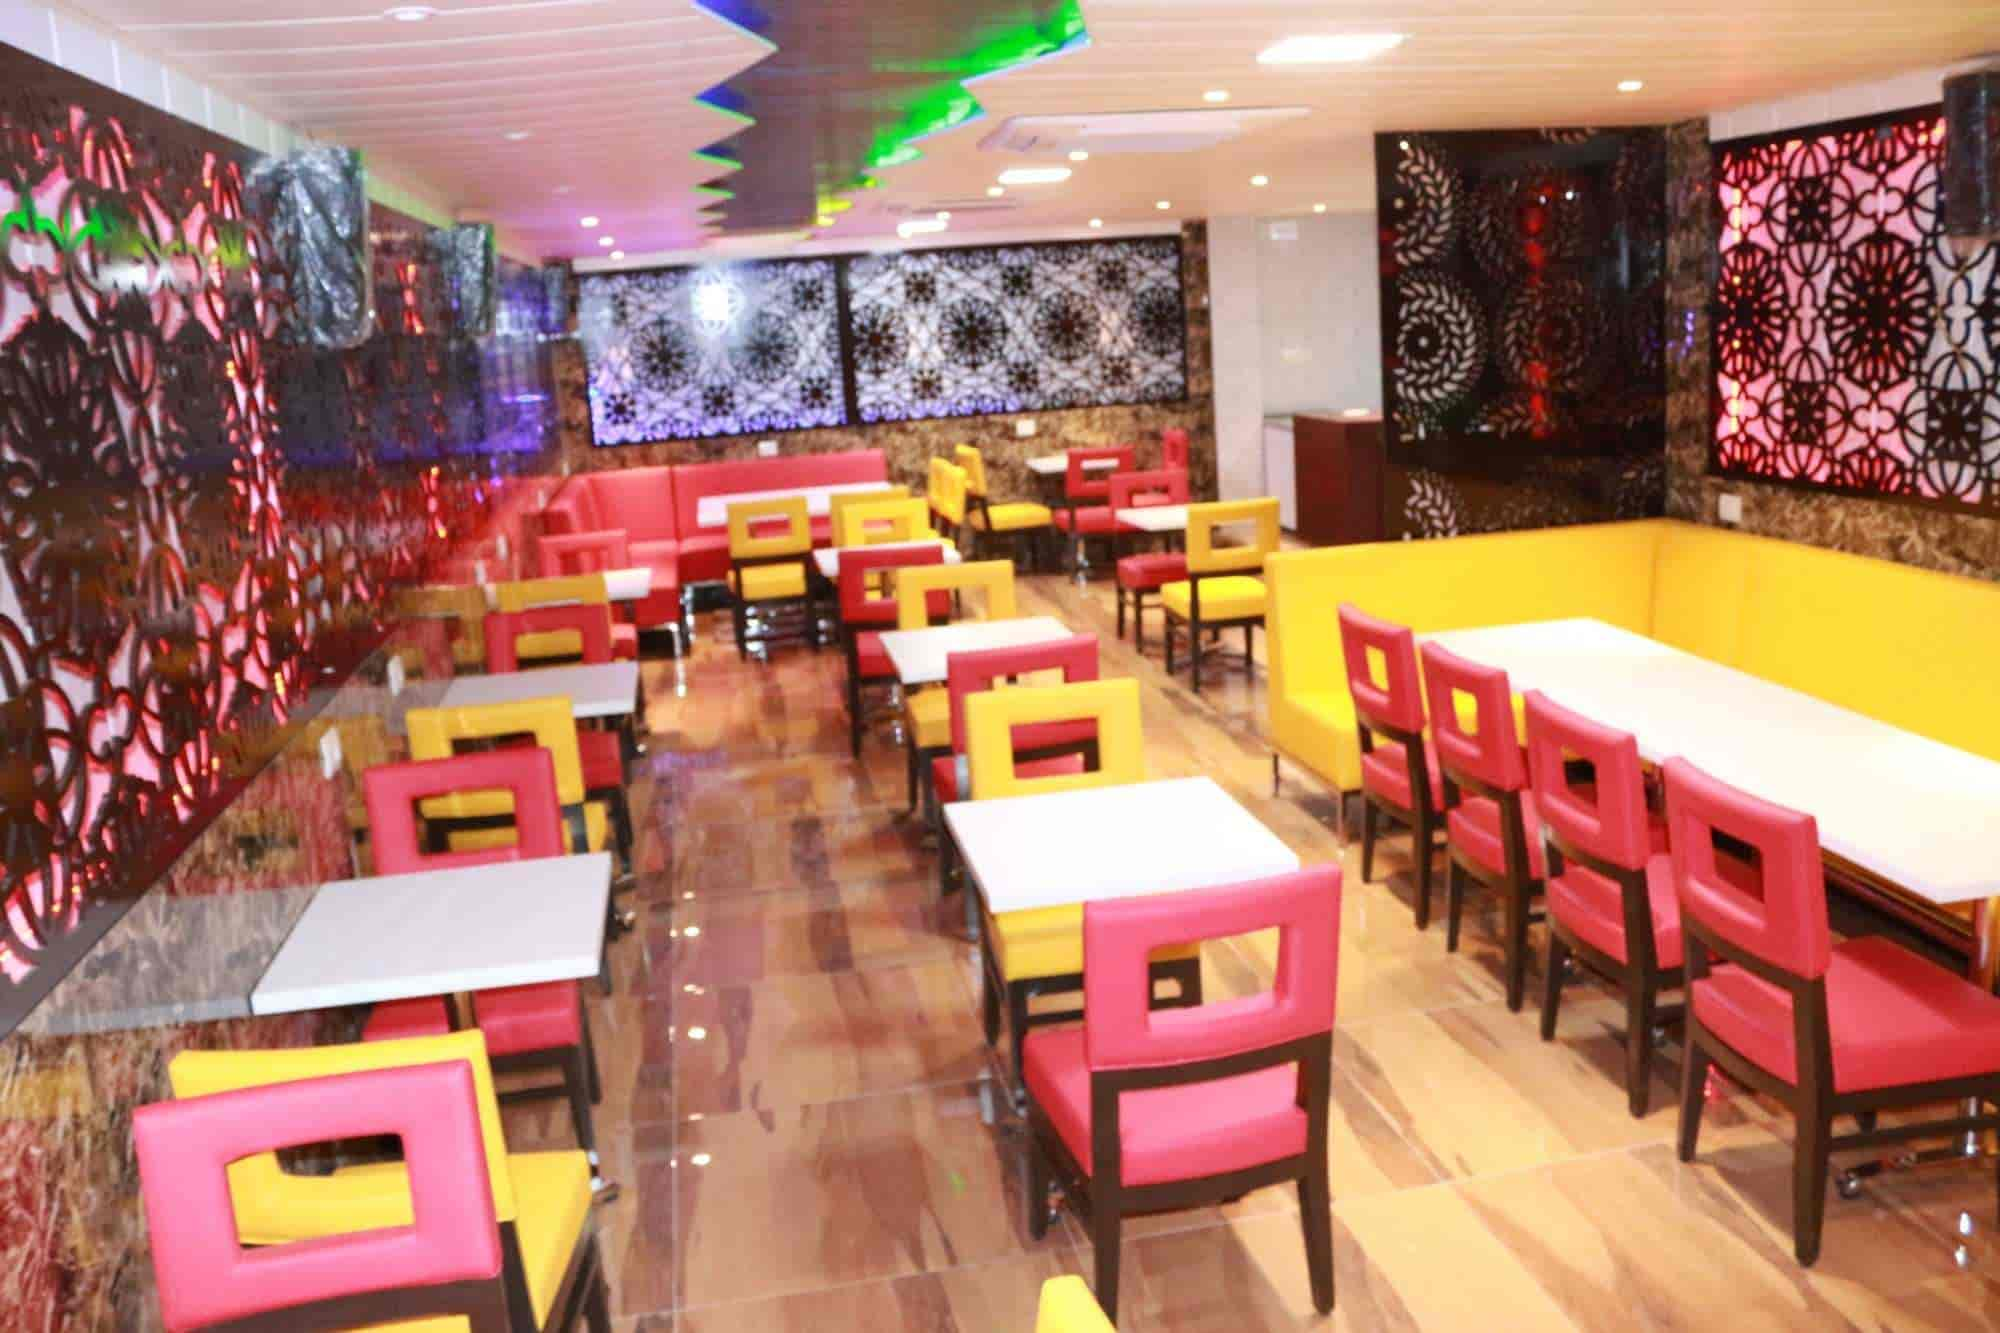 Exceptionnel New Krazy Kitchen Photos, Rajendra Nagar, Dehradun   Chinese Fast Food  Joints ...